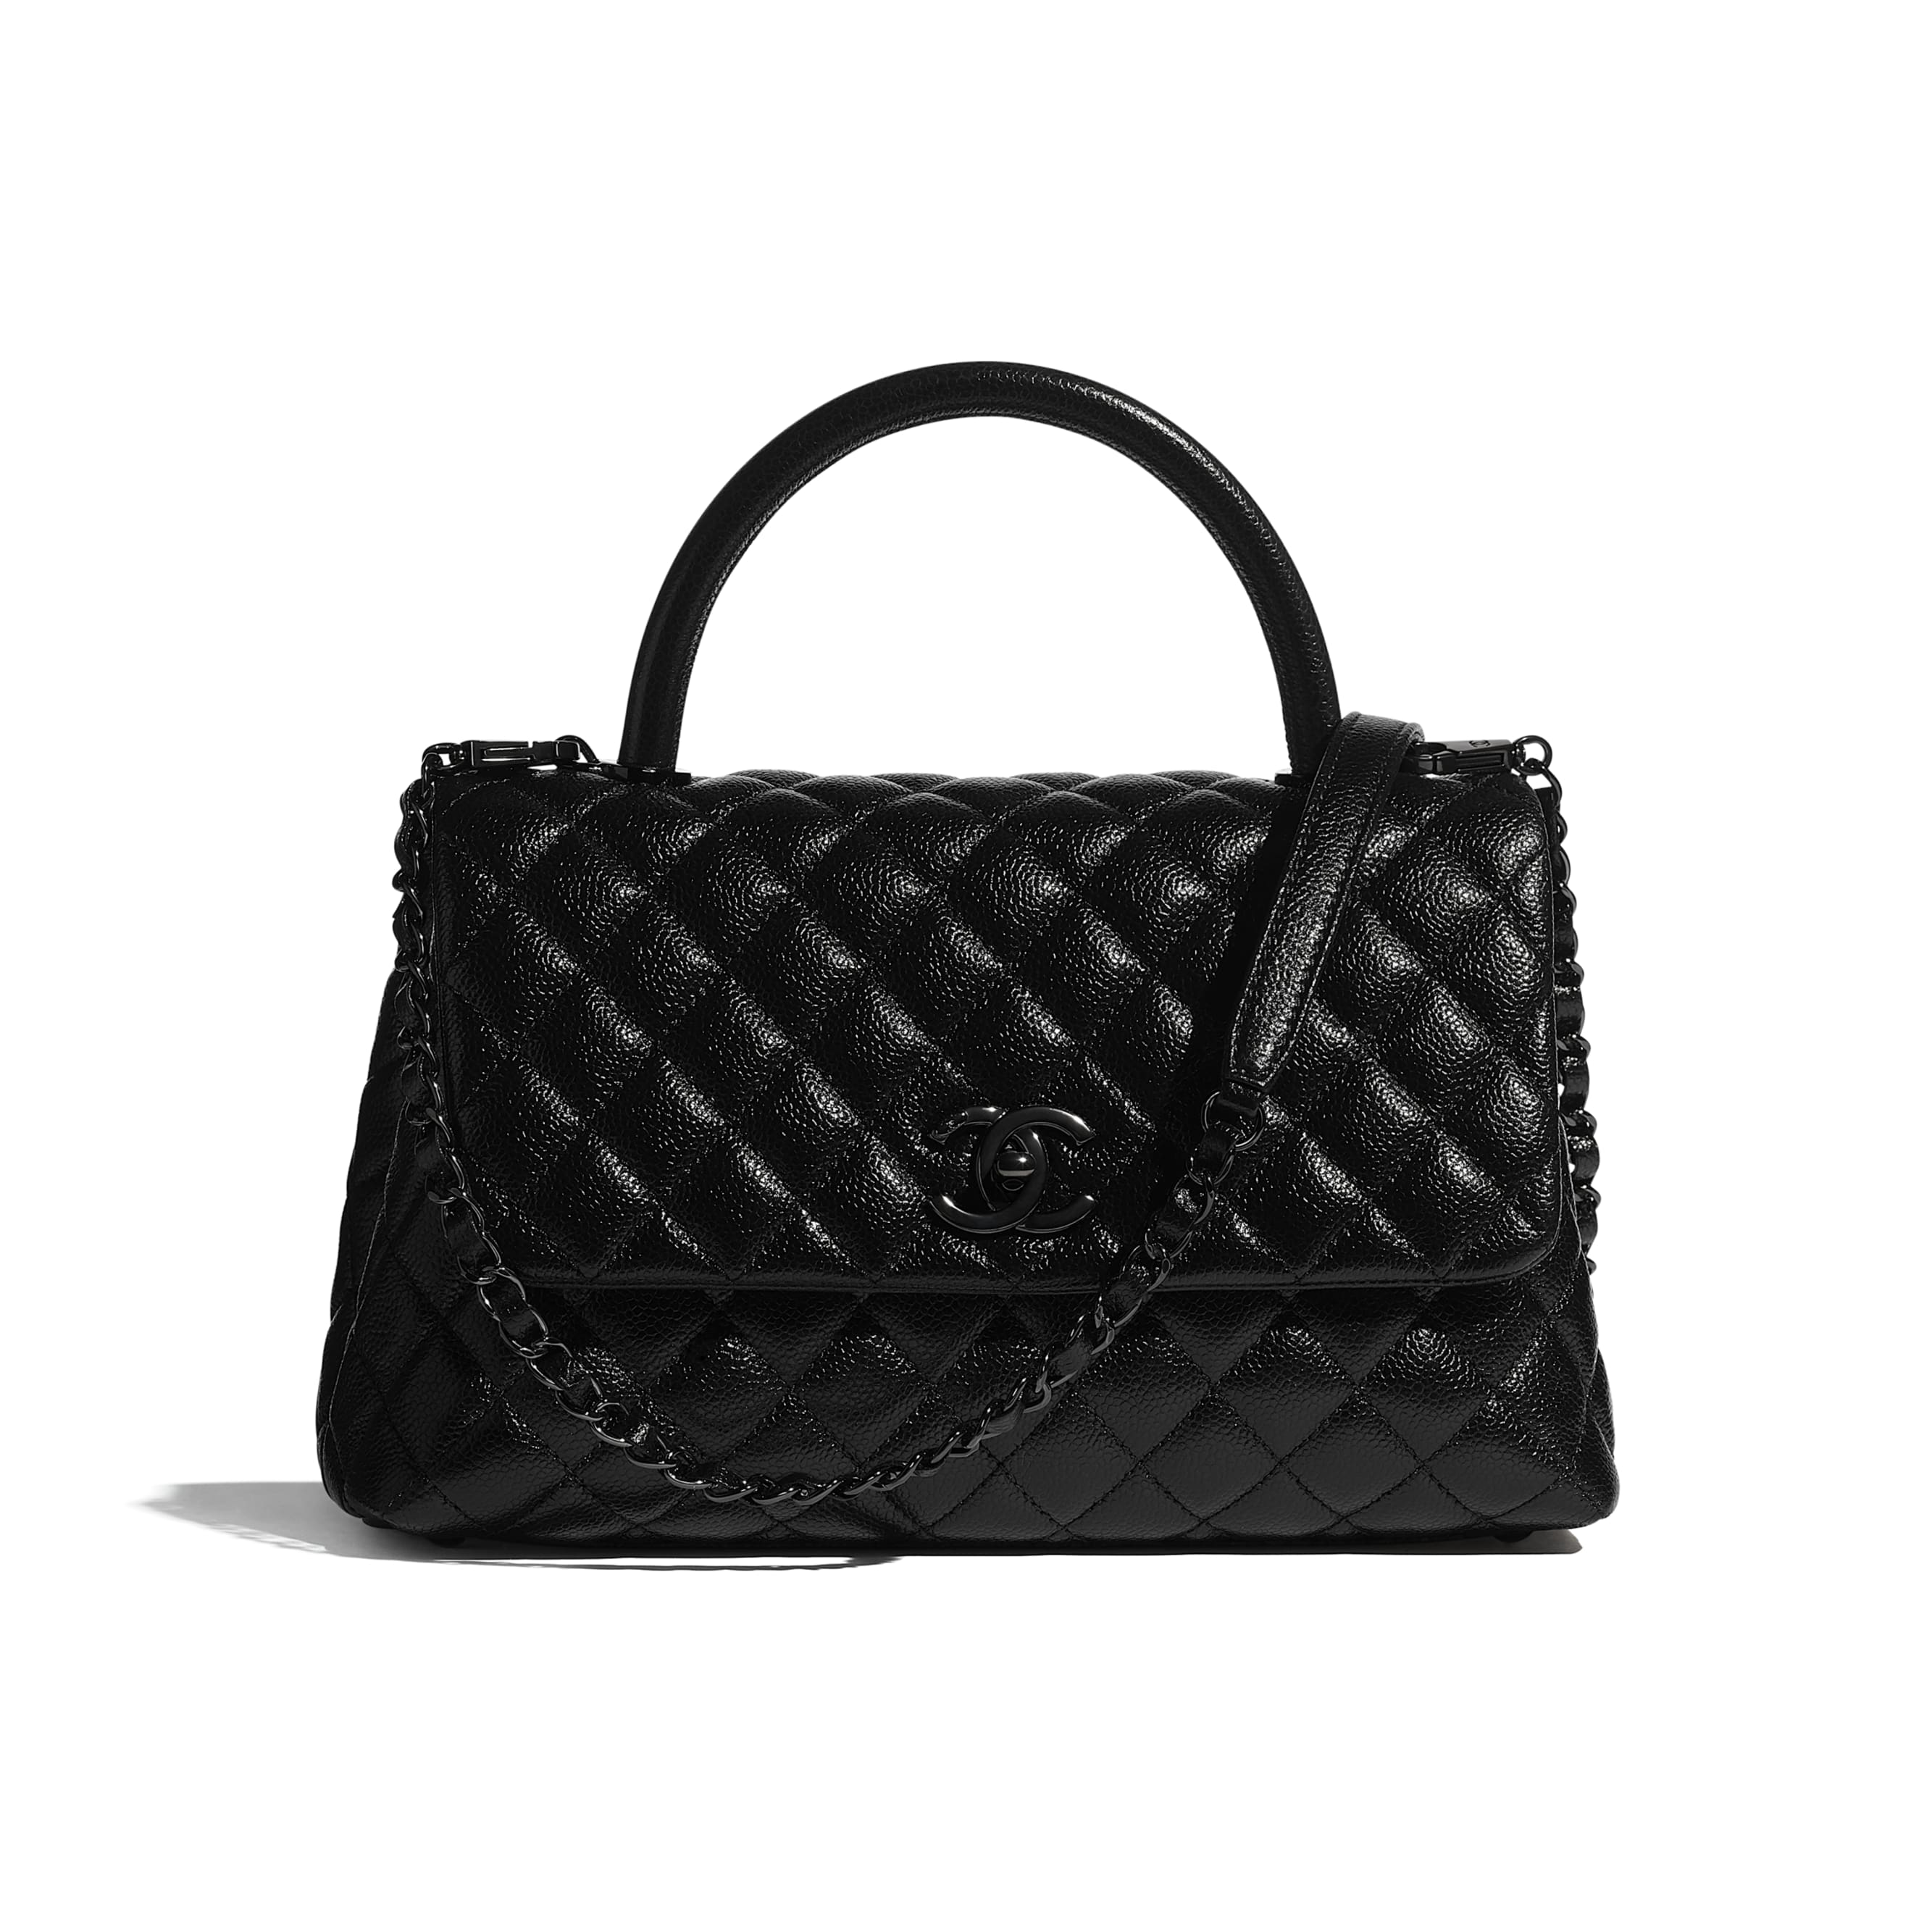 Flap Bag With Top Handle - Black - Grained Calfskin & Black Metal - CHANEL - Default view - see standard sized version